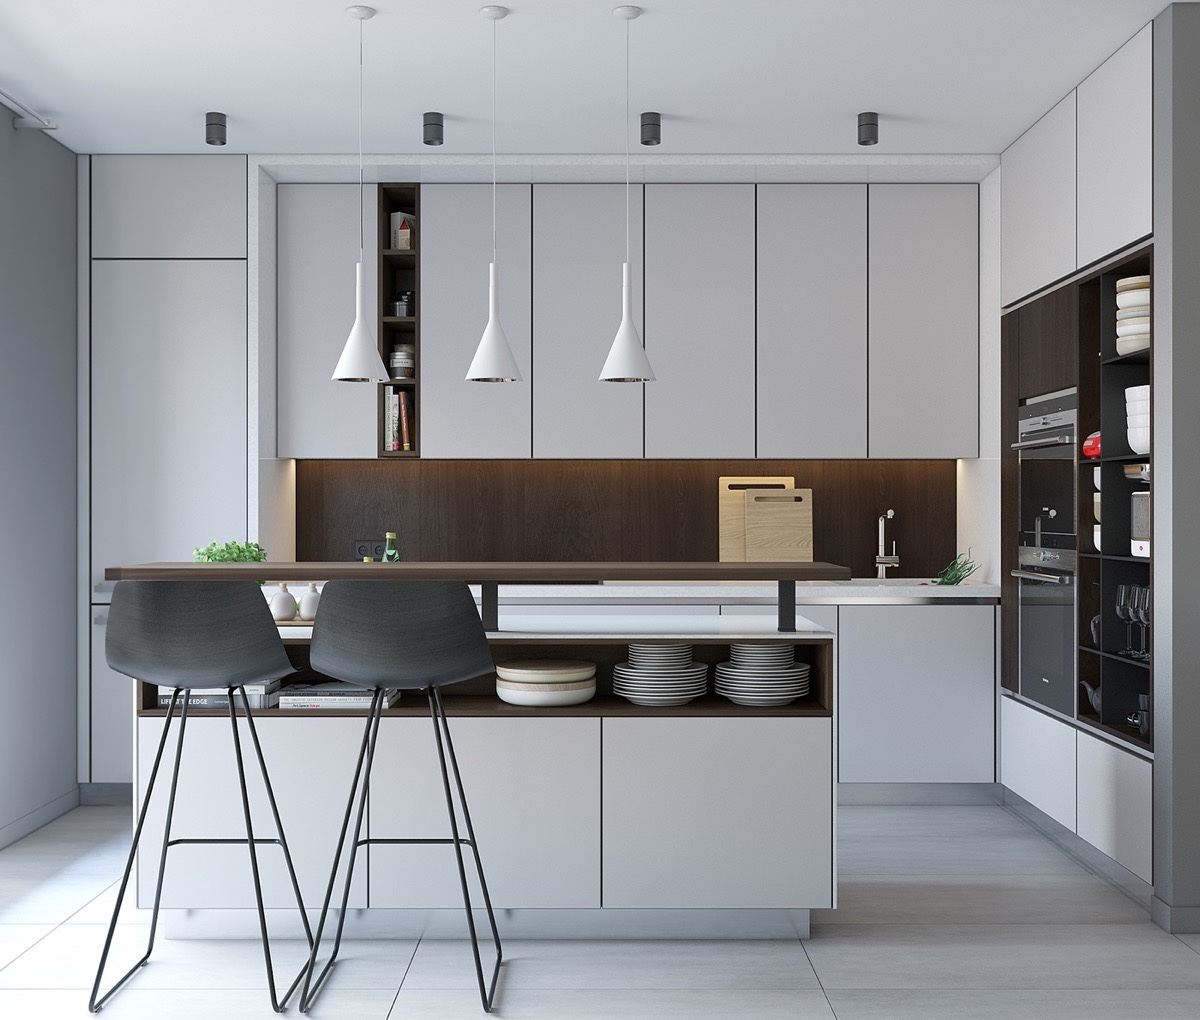 40 Minimalist Kitchens to Get Super Sleek Inspiration images 32